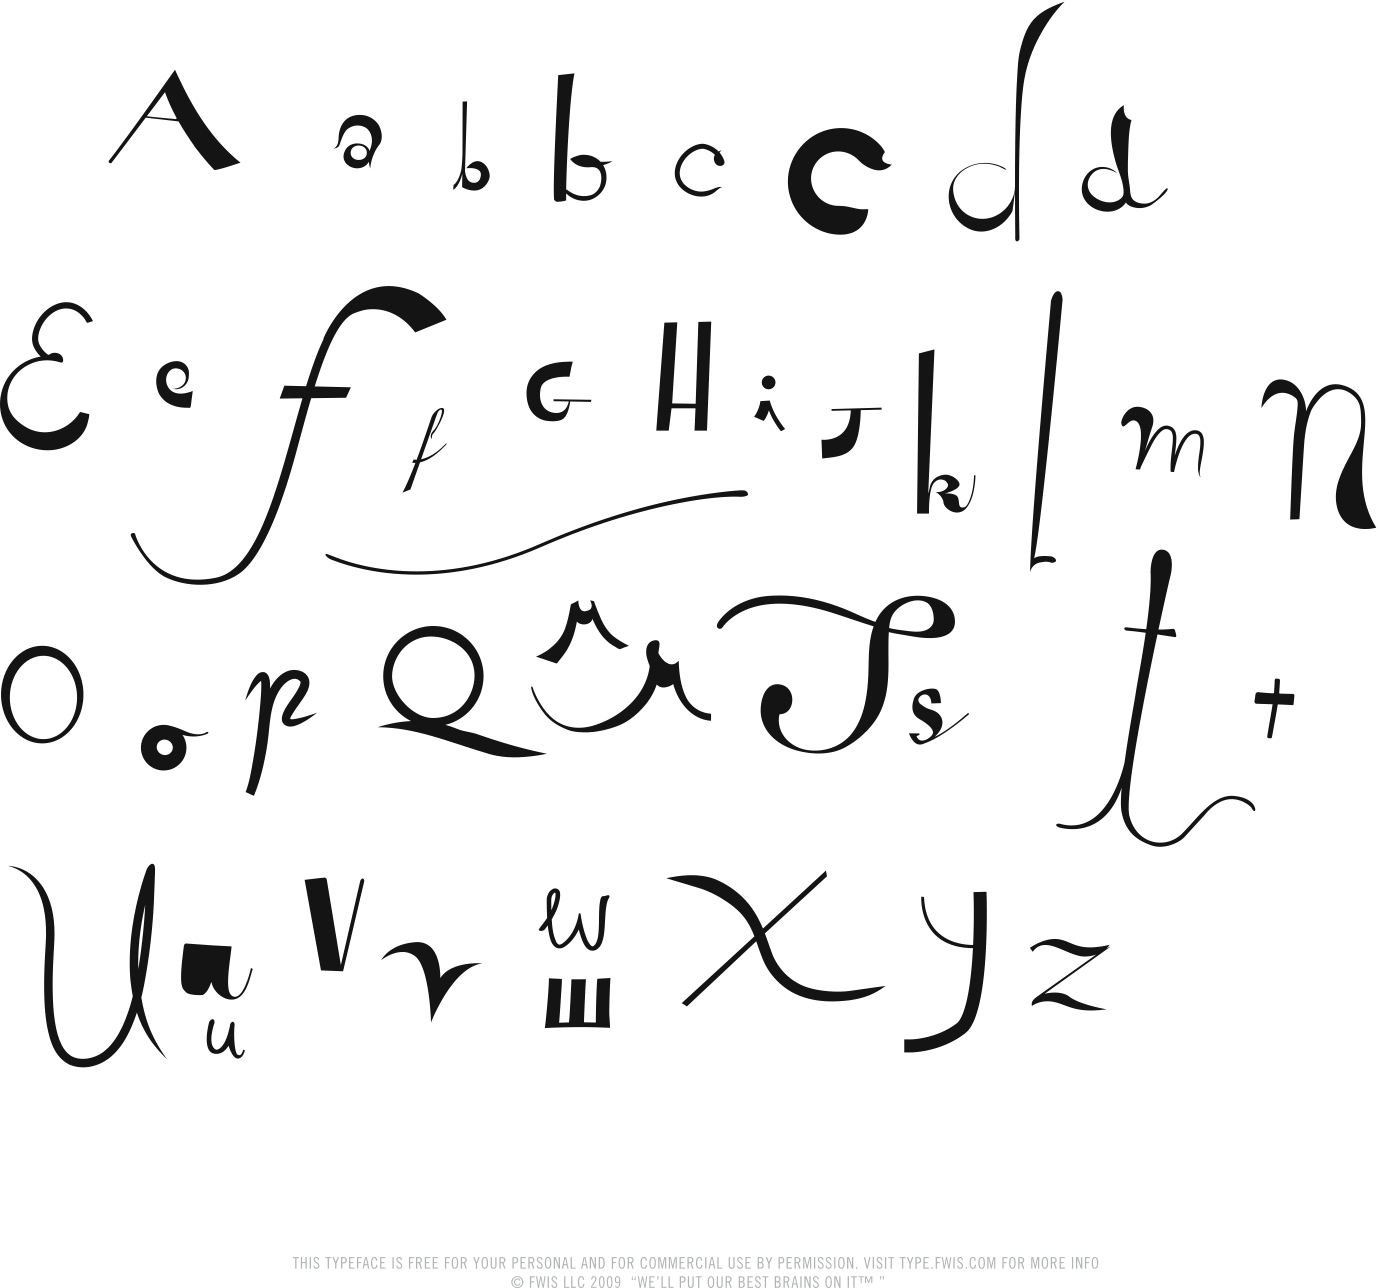 26] designer of the organic typeface Steam, the hand-drawn typeface ...